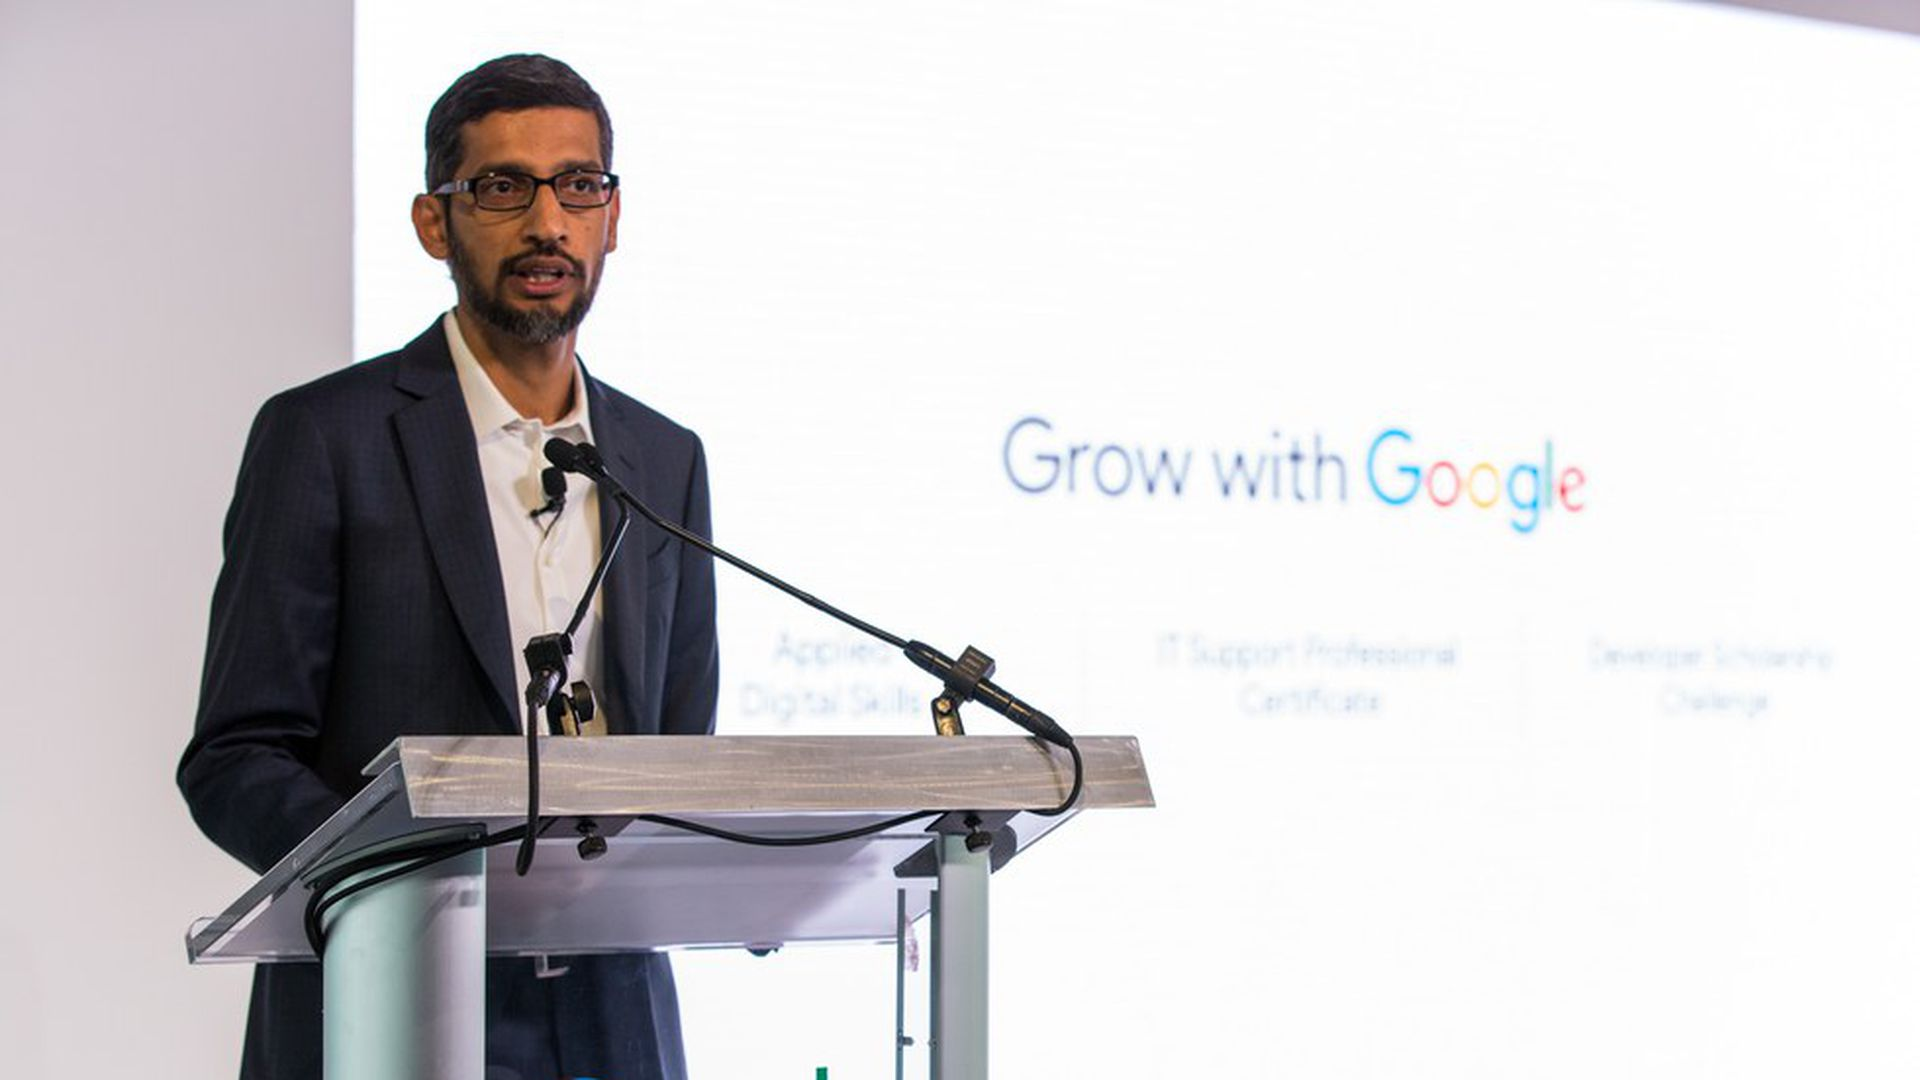 Google announces $1 billion job training and education program